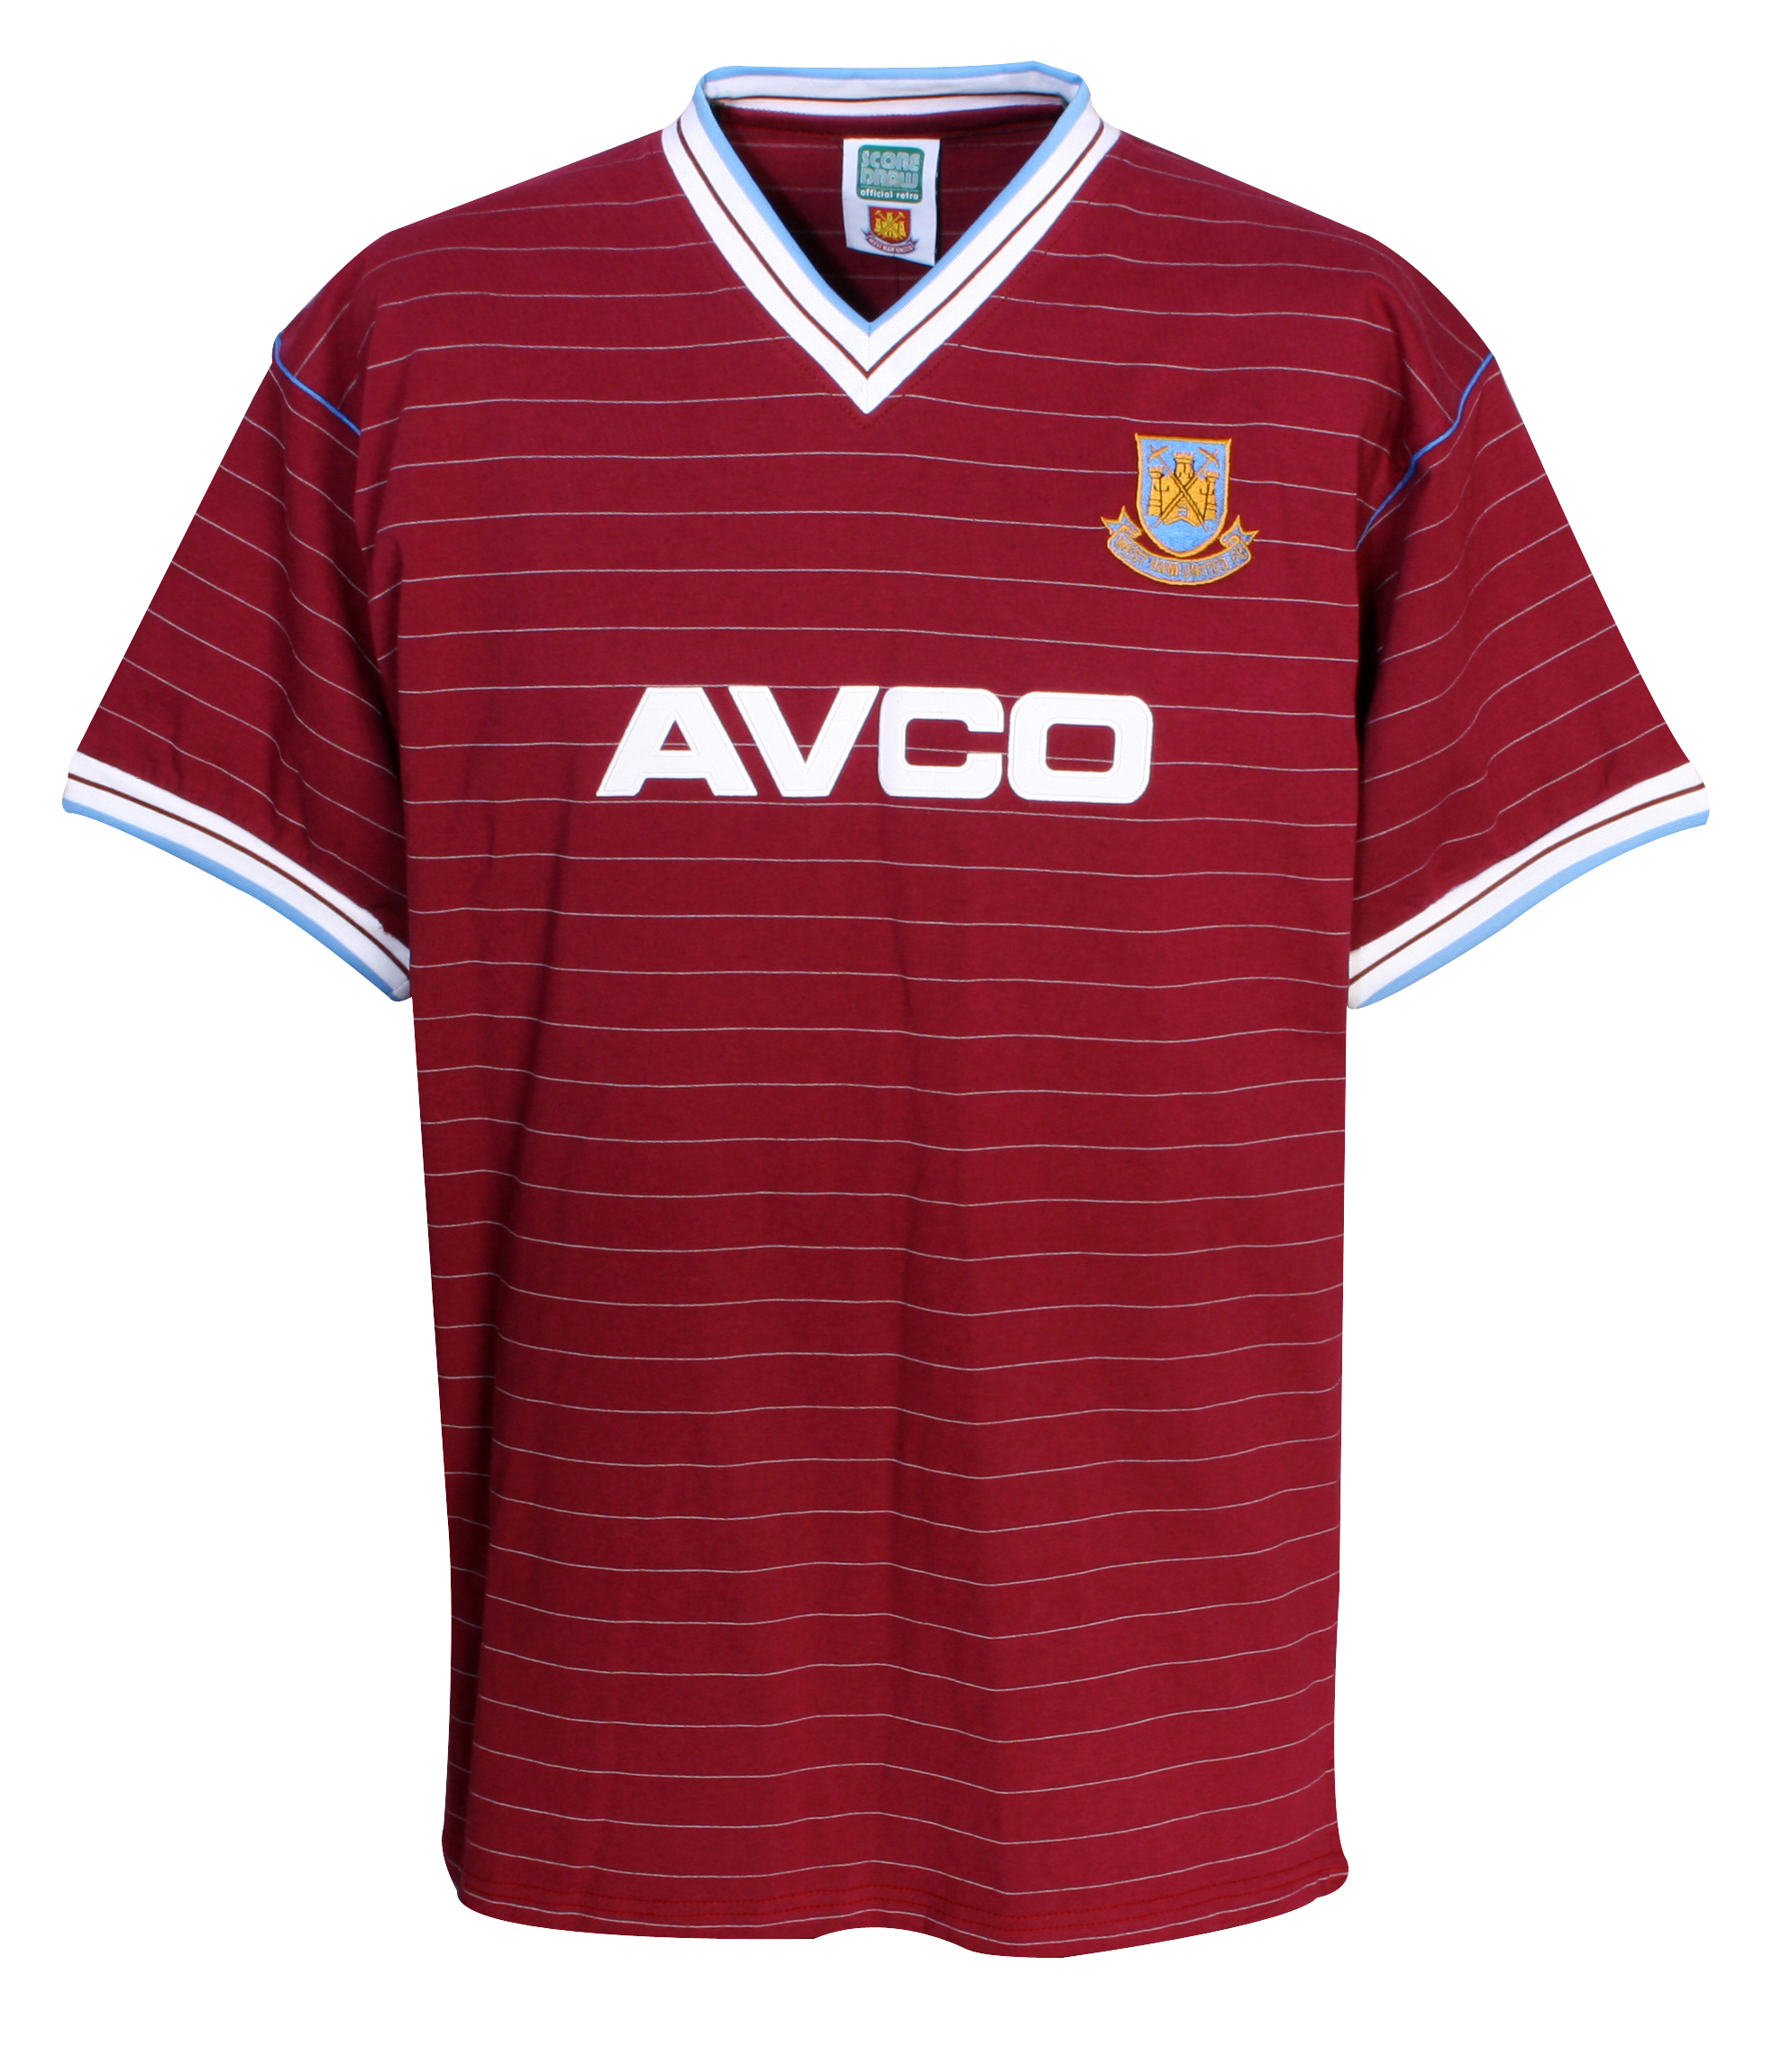 West Ham Utd 1986 Avco Home Shirt - Claret